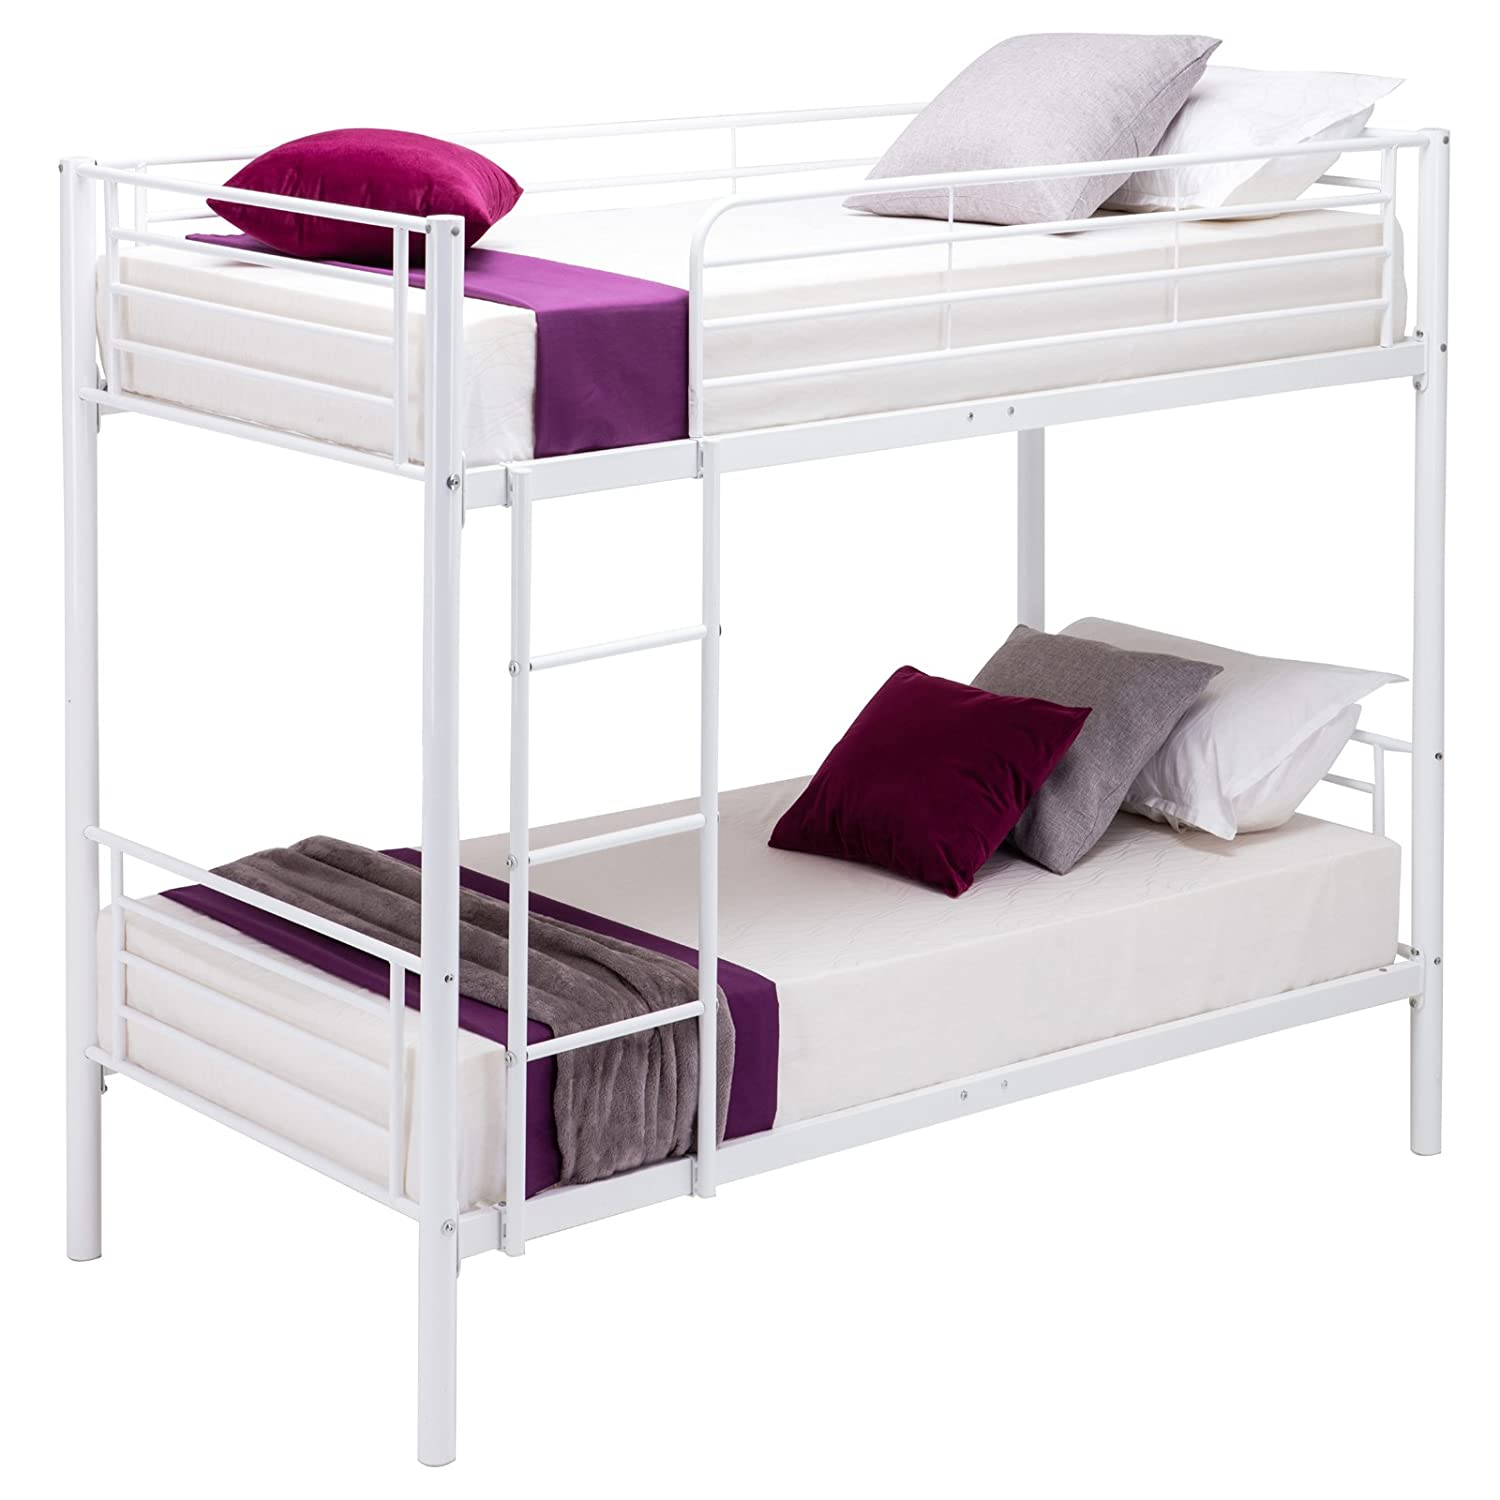 UEnjoy 2x3FT Single Metal Bunk Beds Frame for Adult and Children White